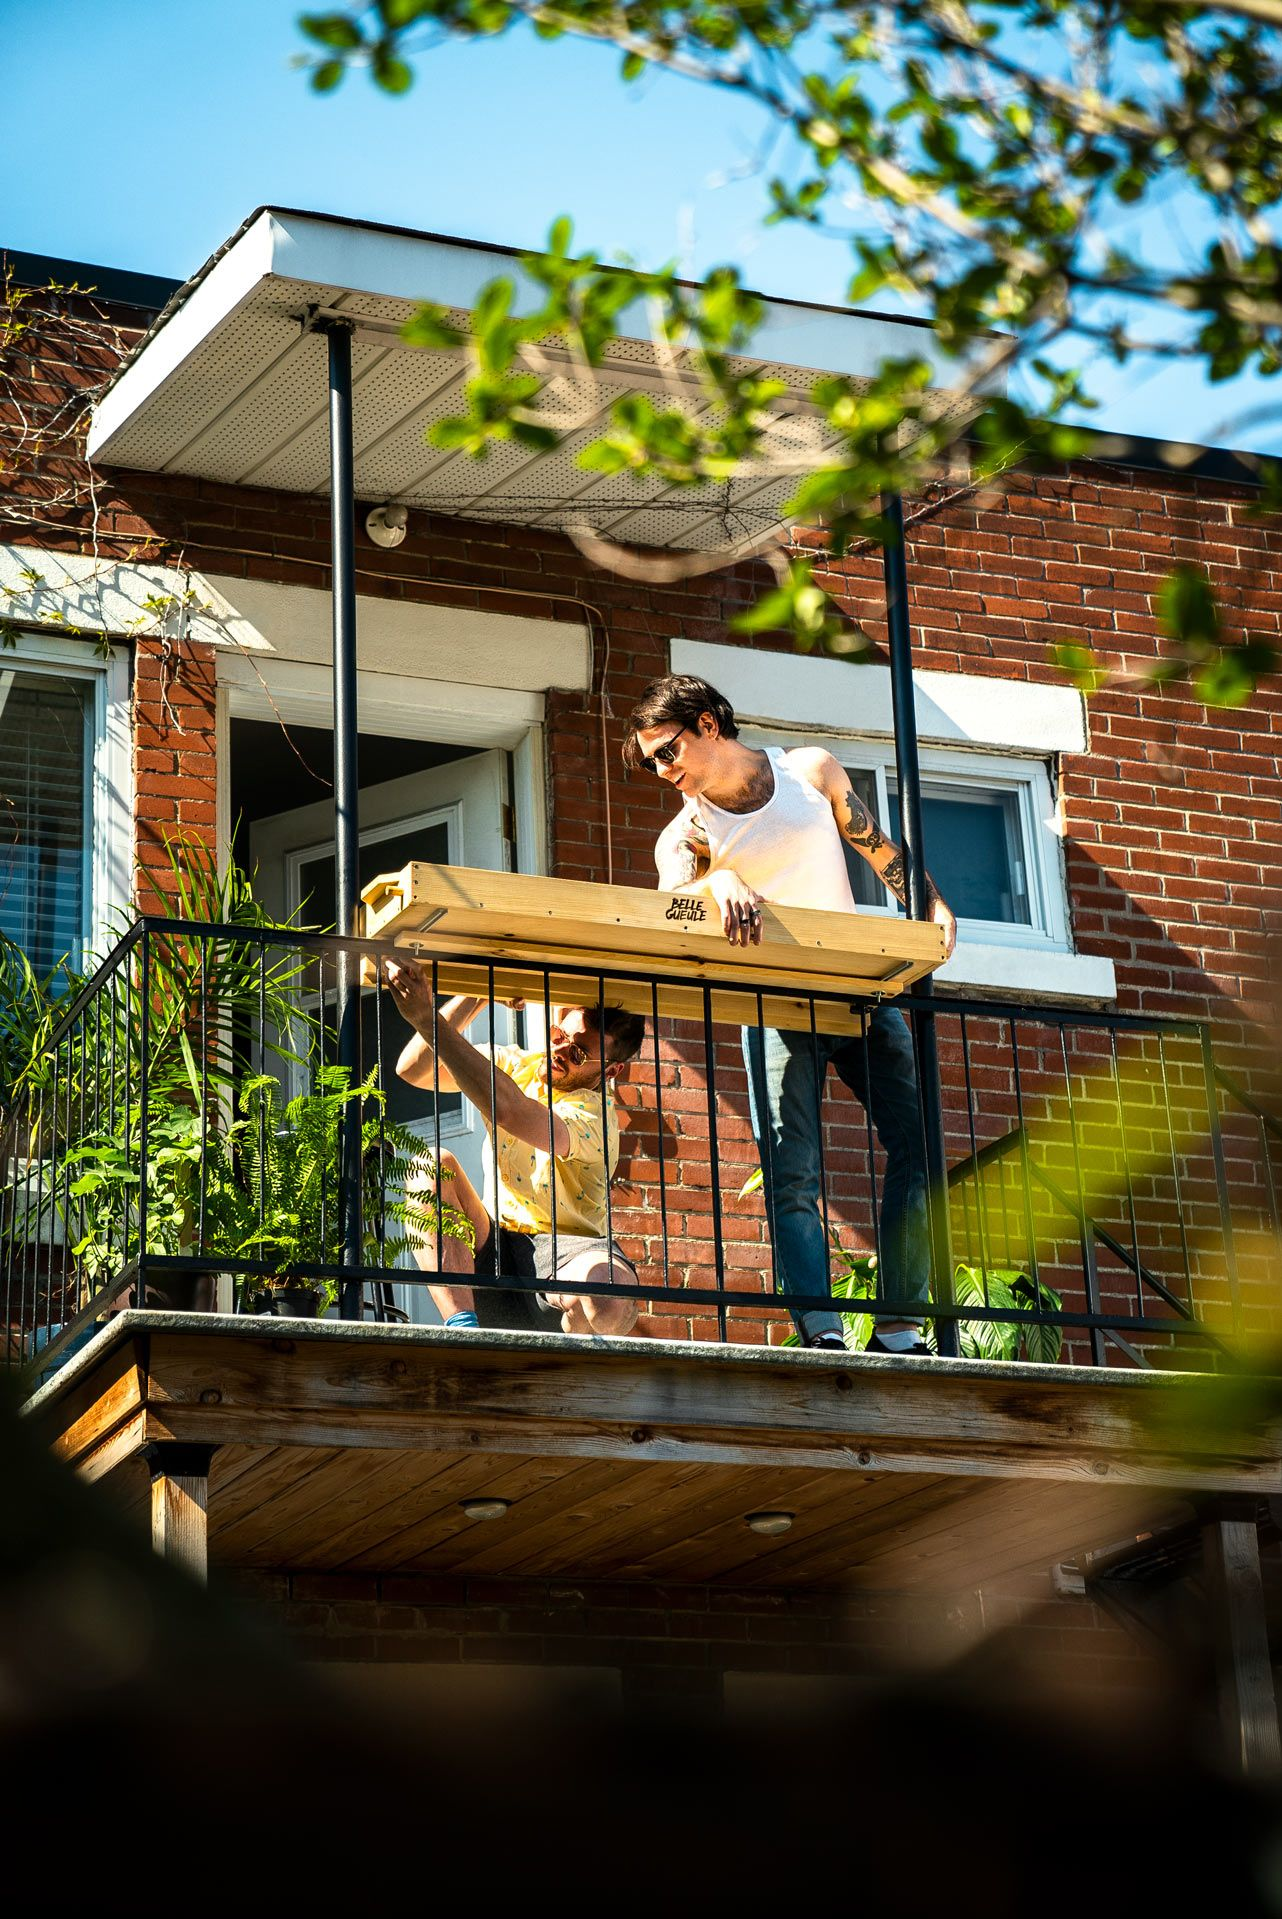 two man installing their balcony bar attachment by Belle Gueule and laughing photographed by Bruno Florin for Belle Gueule with Forsman & Bodenfors